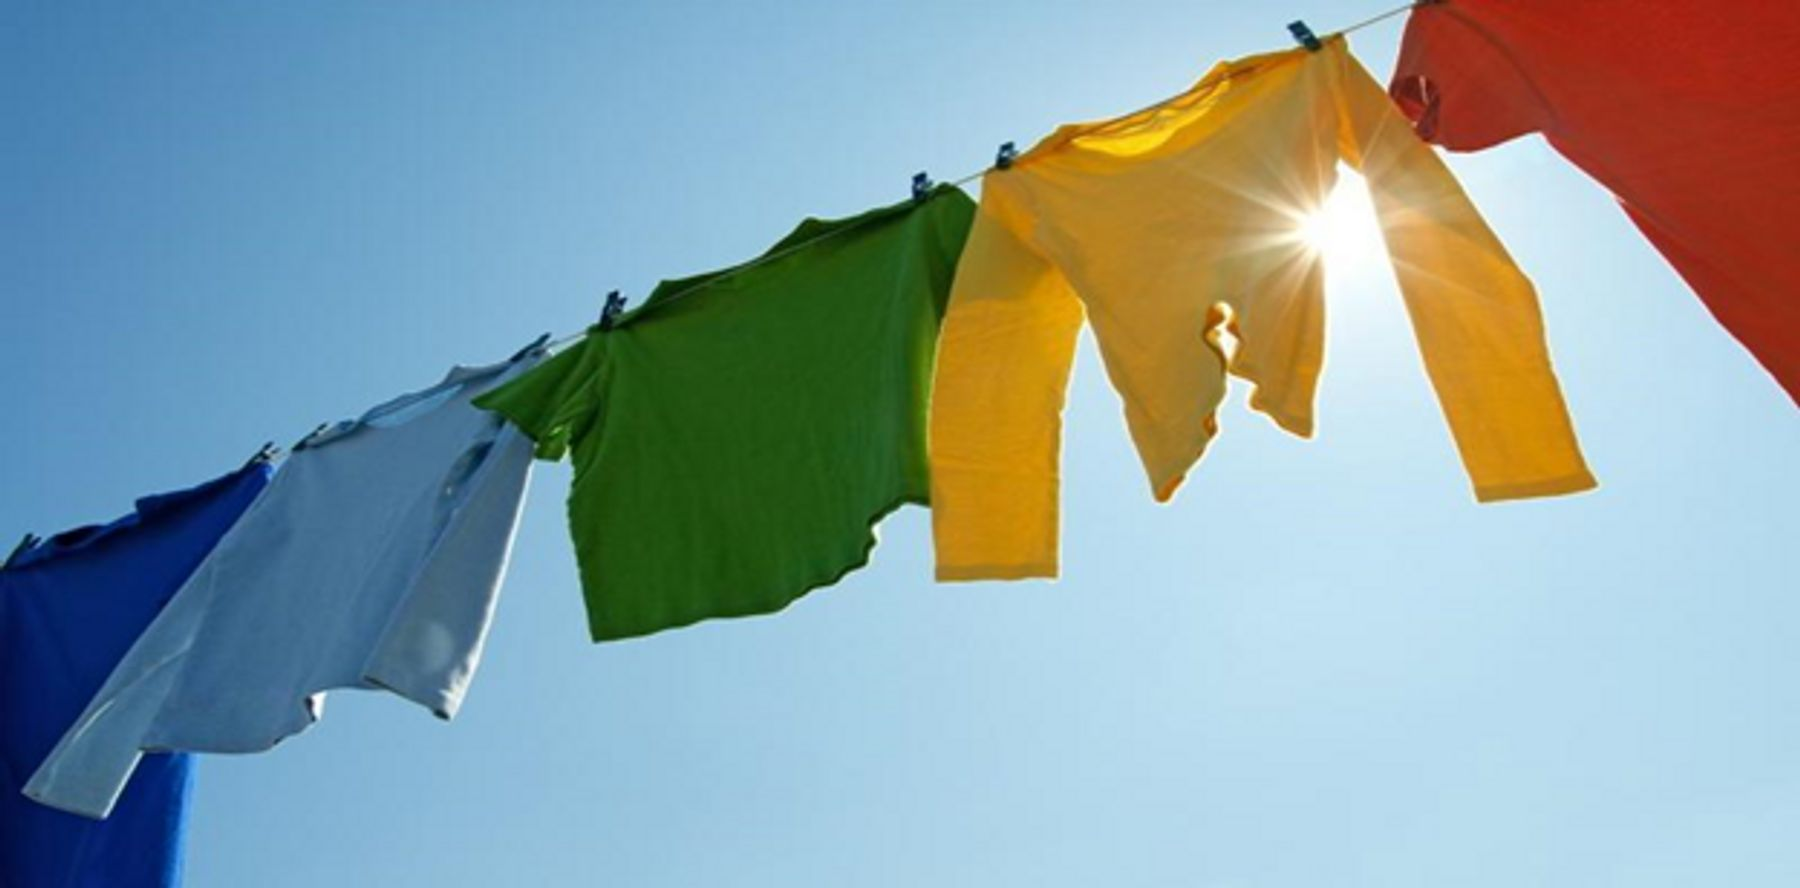 Step 1: cloth drying in sun